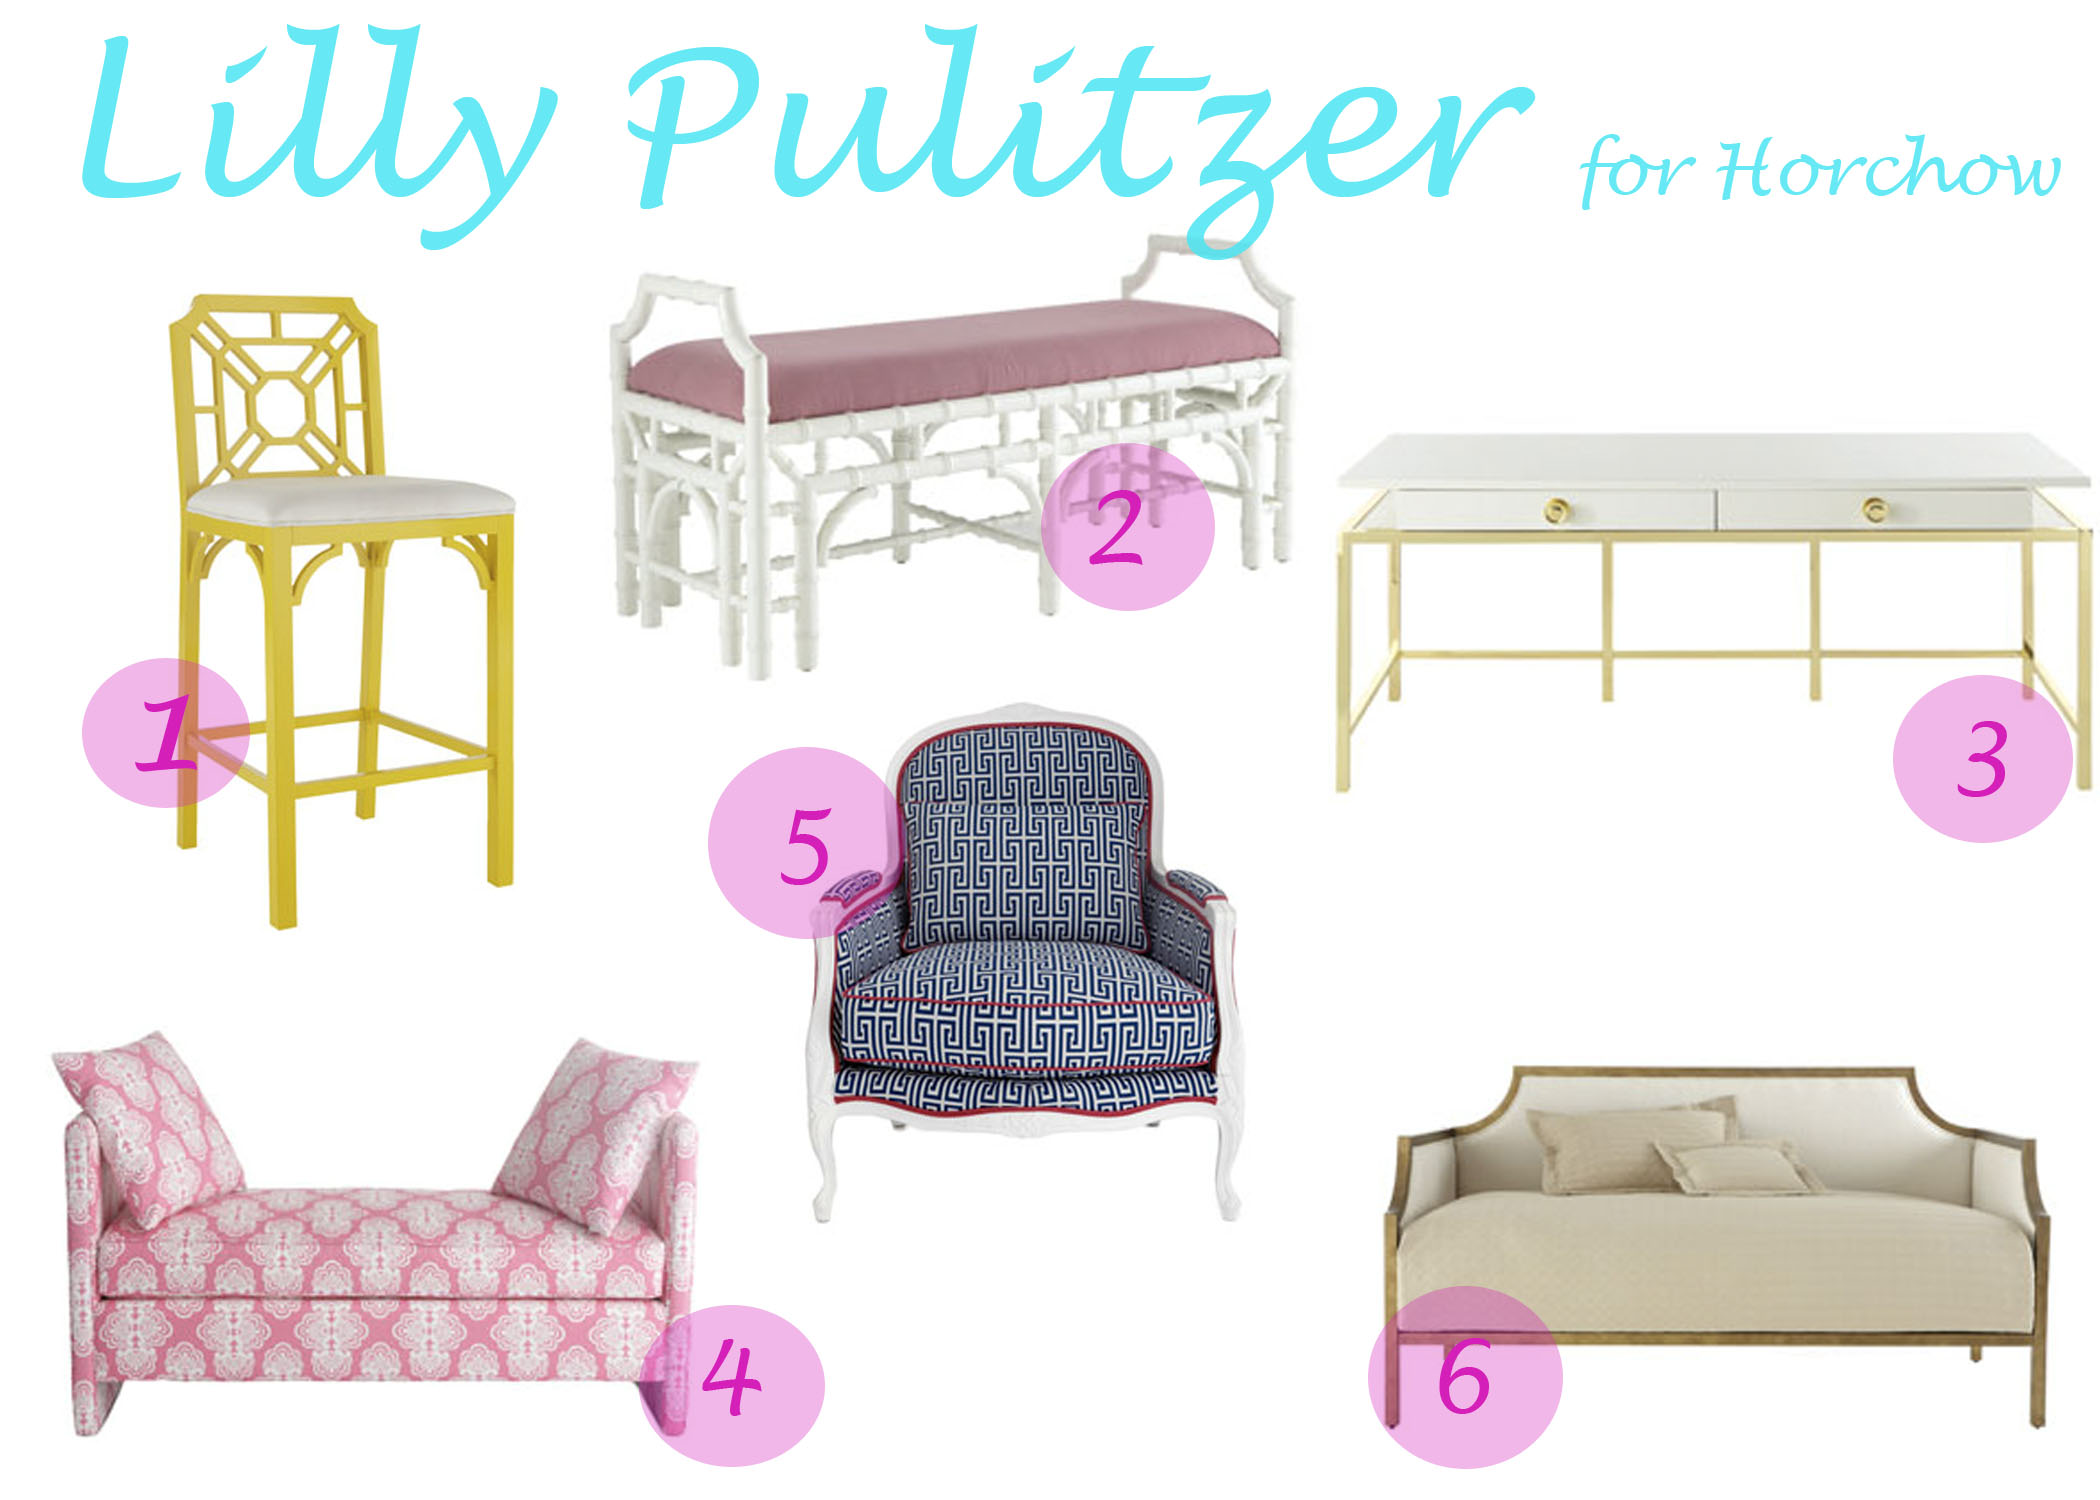 1. Lilly Pulitzer for Lee Jofa   capriciously inspired